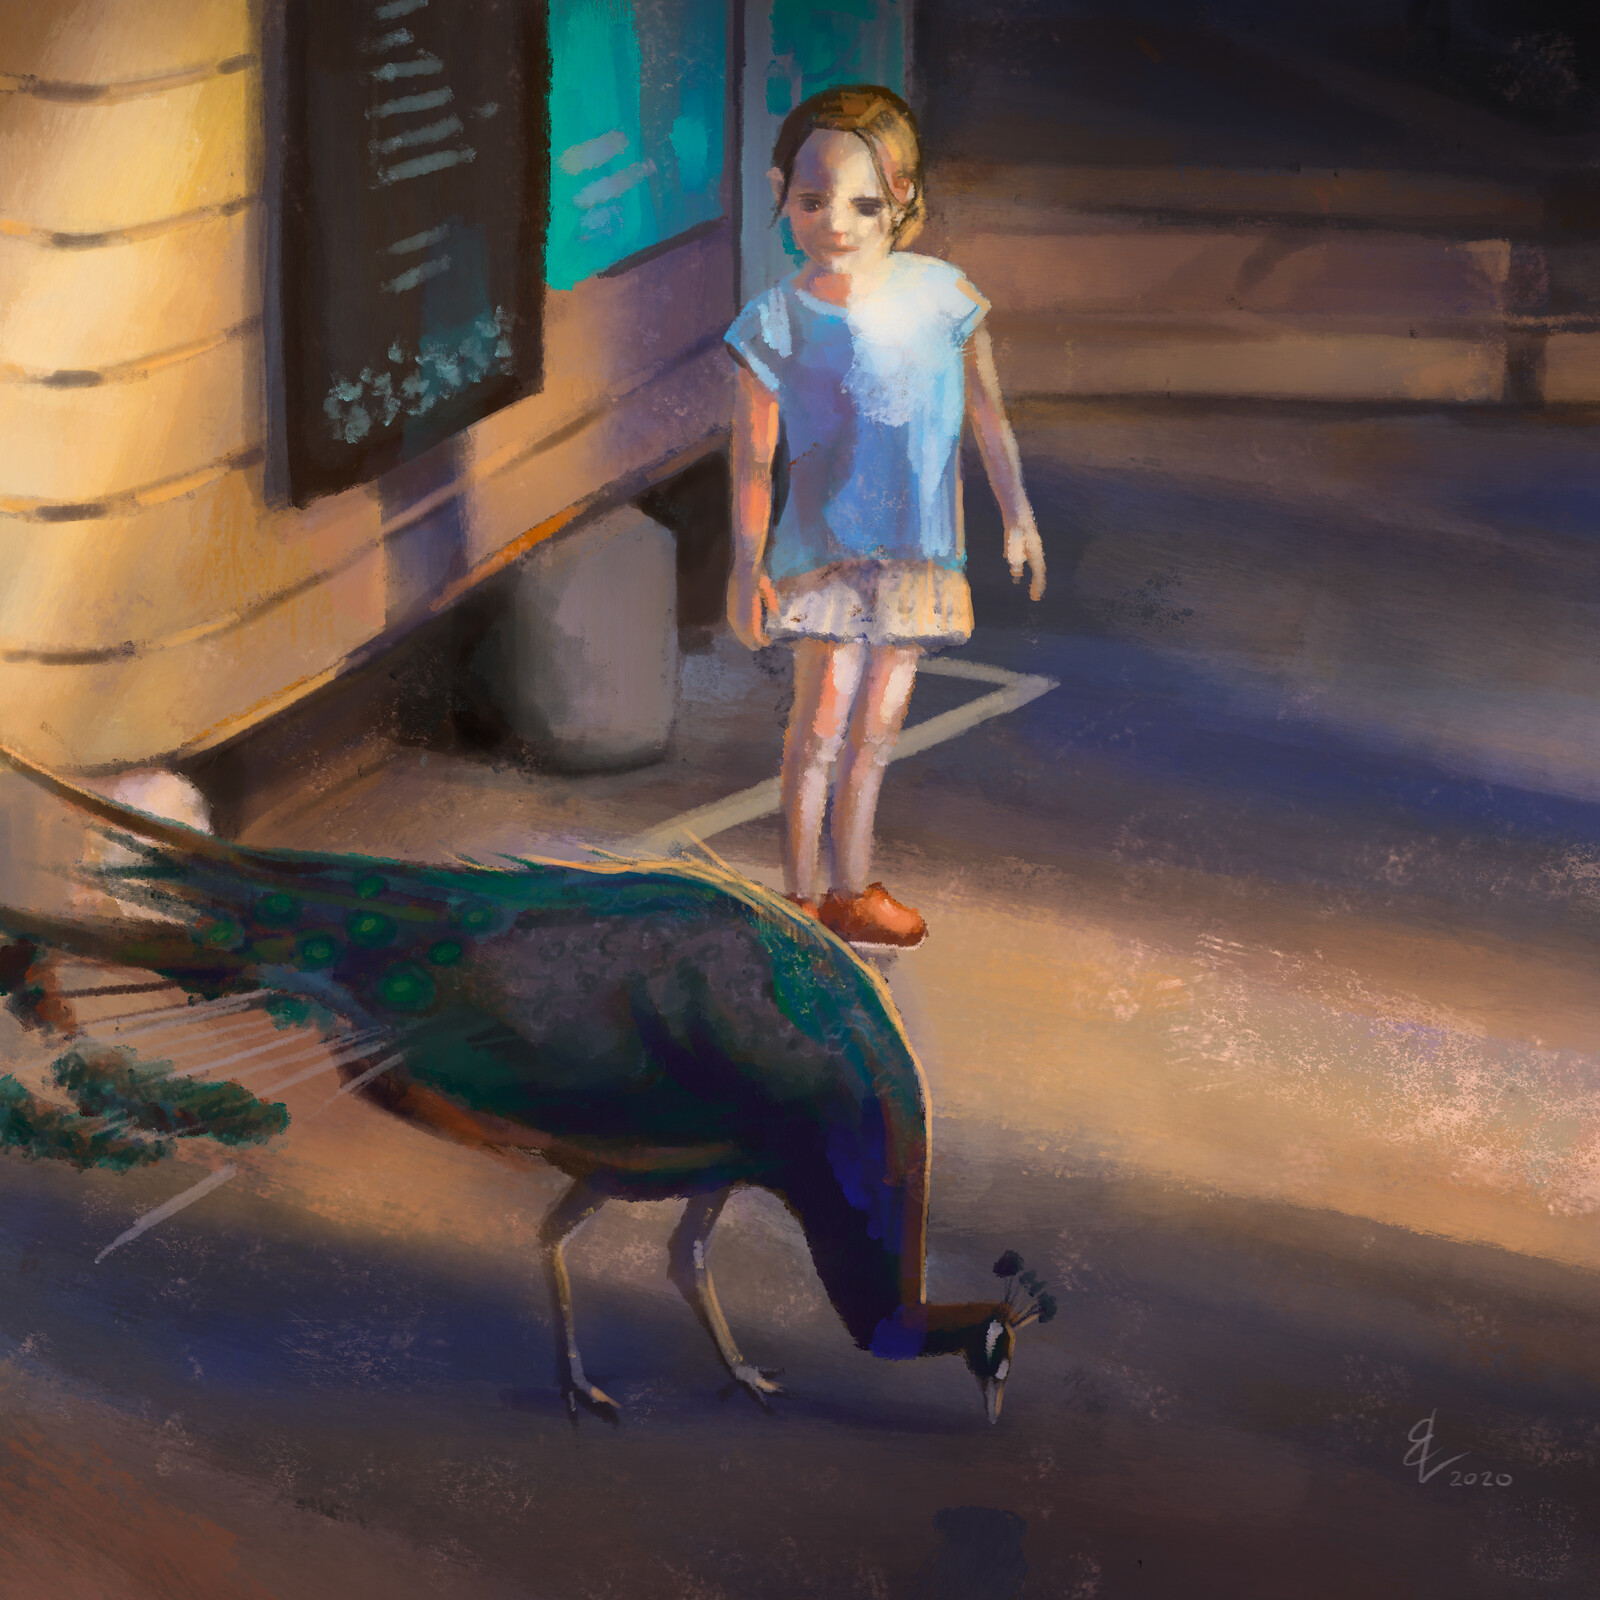 A Peacock and A Girl - Quick Sketch